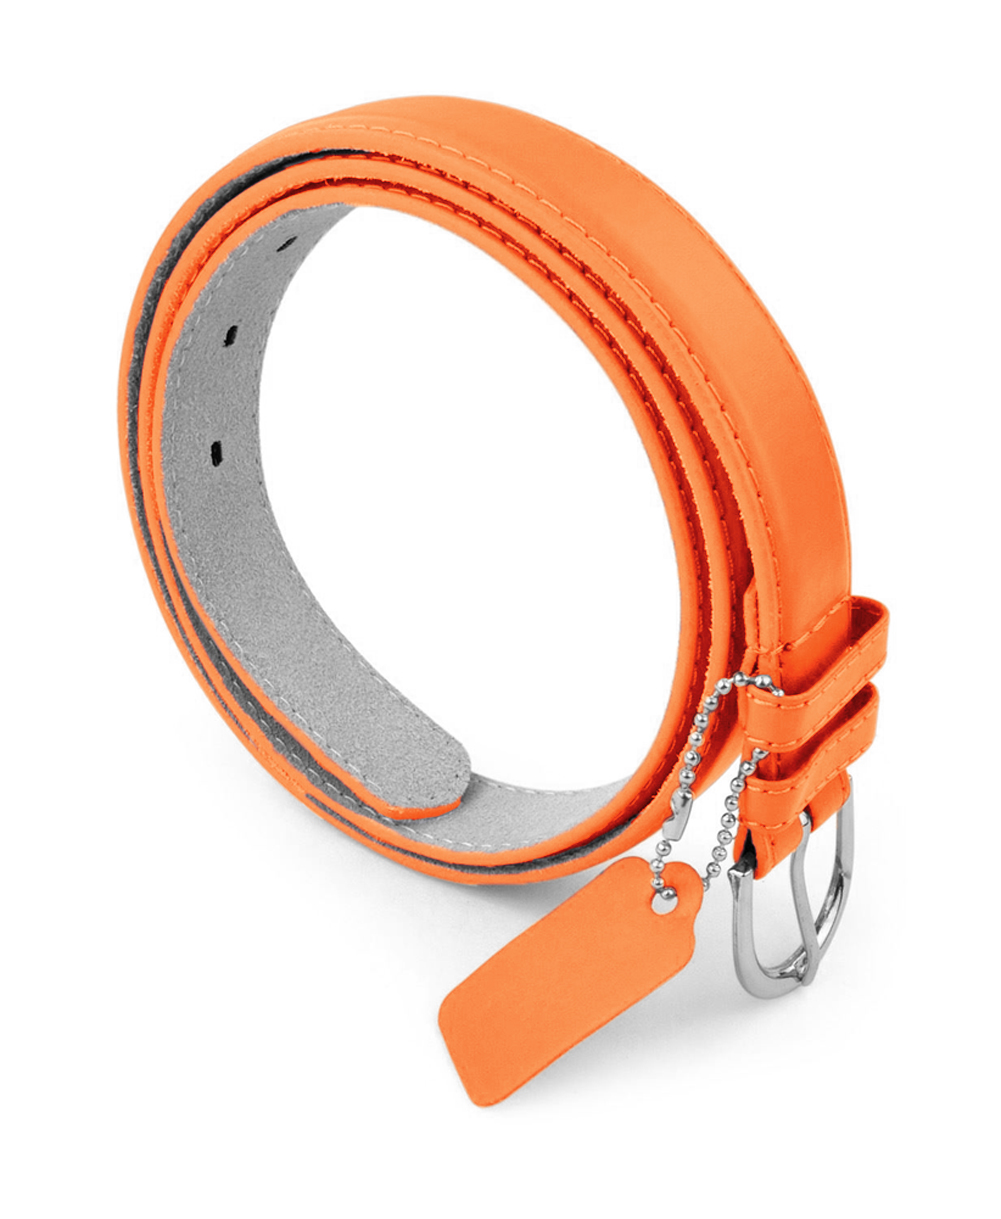 Womens Leather Belt with Silver Polished Round Buckle - Metallic/Neon Colors - PU Leather Belts by Belle Donne - Neon Orange Large